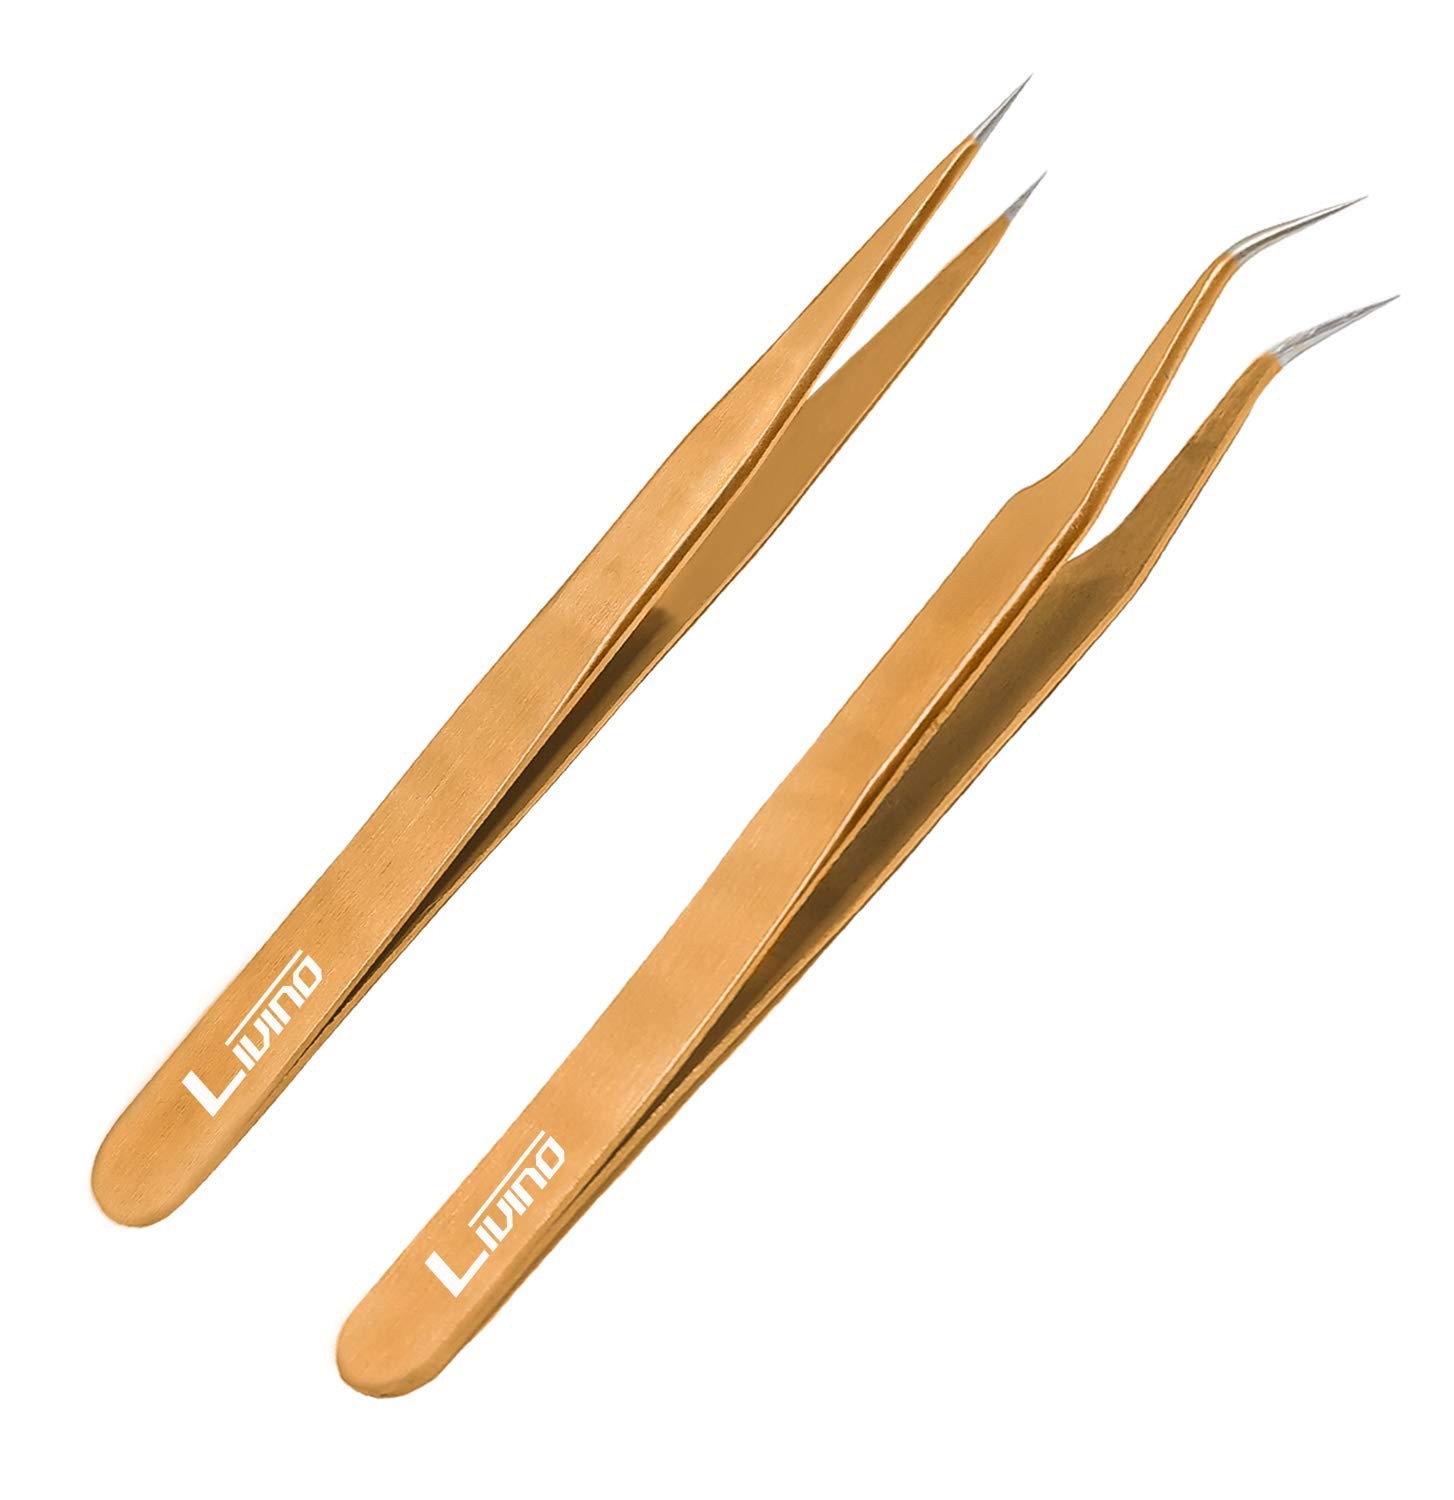 LIVINO Eyelash Extension Tweezers Straight - Set of 2 Stainless Steel Extension Tweezers with Curved Tip - Eyelash Extension Supplies Nipper for Eyelash Extensions Eyelash Tweezers